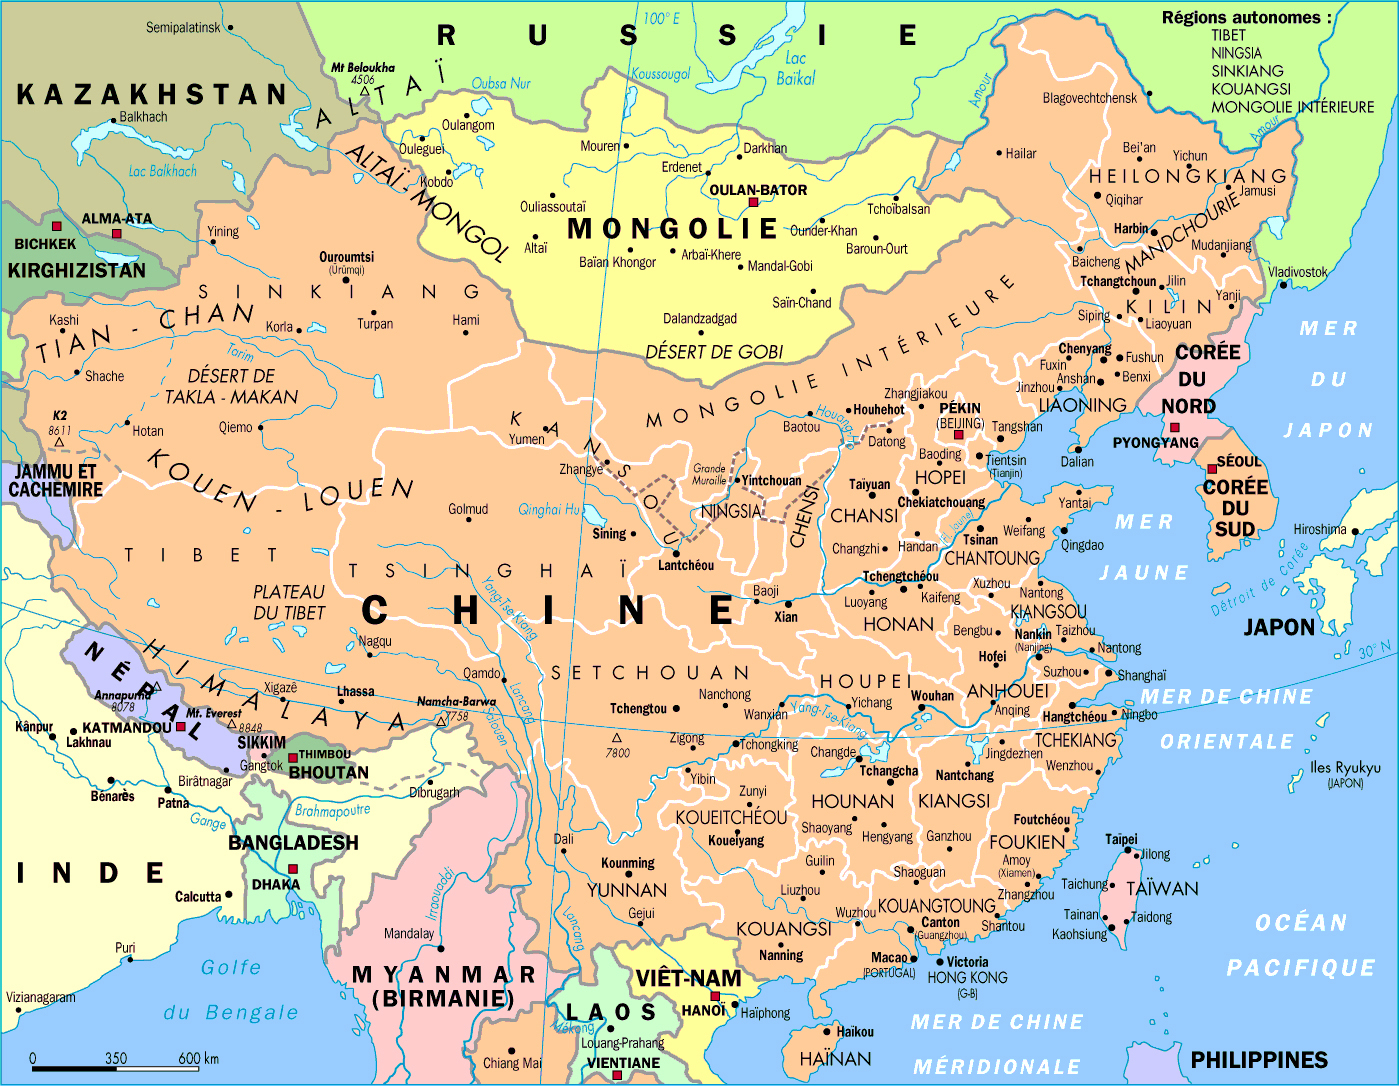 detailed political and administrative map of china  china  asia  - detailed political and administrative map of china